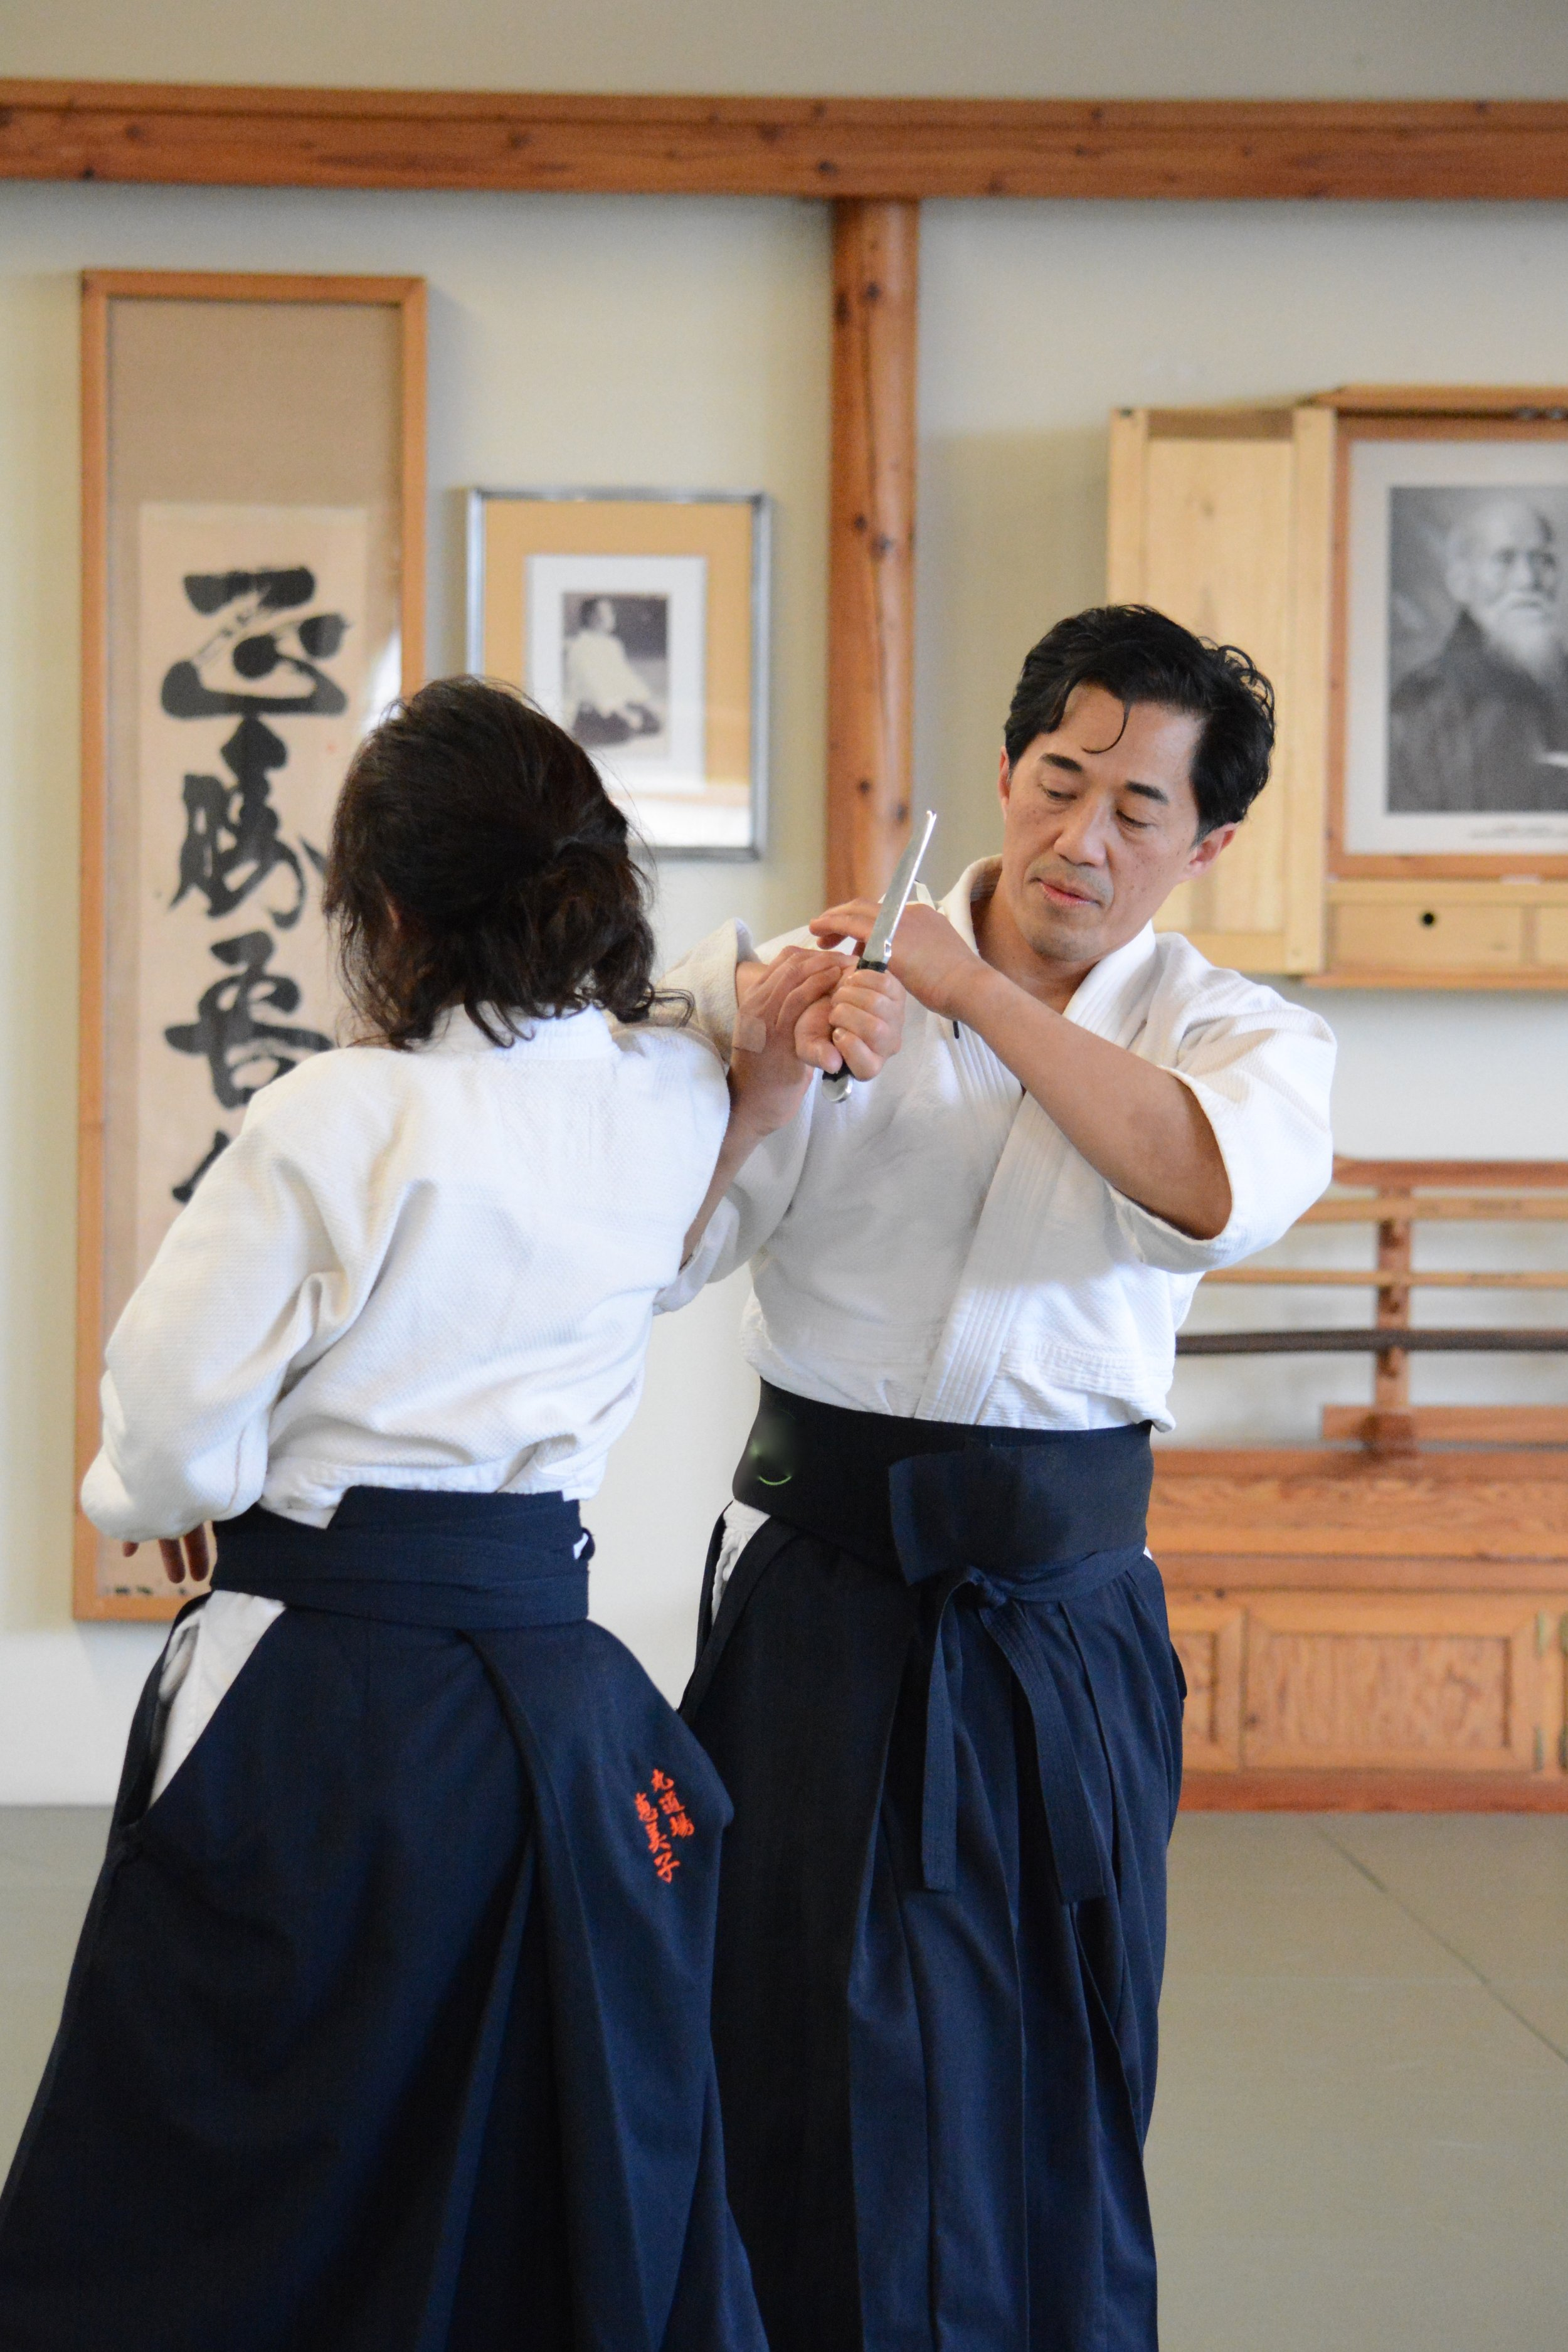 Instructor - In 1988, Ray Sensei set foot at Pasadena Aikikai, Pasadena.  It was the first step in a long and continuous journey into the world of martial arts.  Francis Takahashi Sensei (7th dan) was one of Ray's influential sensei.  Equally important,  Yoshimitsu Yamada Sensei (8th dan) left an imprint in Ray's aikido.In 2005, he became Pasadena Aikikai's Chief Instructor.  A few years later, he opened Maru Dojo (San Francisco, CA), a sister dojo to Pasadena Aikikai.Throughout the years in training Aikido, he also began his training in Filipino Martial Arts and Brazilian Jiu-Jitsu, which is part of the The Affiliates (Roy Dean).He also holds a black belt in Shorinji Kempo from the  San Francisco Branch headed by Harada Sensei.Maru Dojo is one of the unique dojos.  Ray sensei connects the dots between Aikido, Jiu-Jitsu and Filipino Martial Arts.